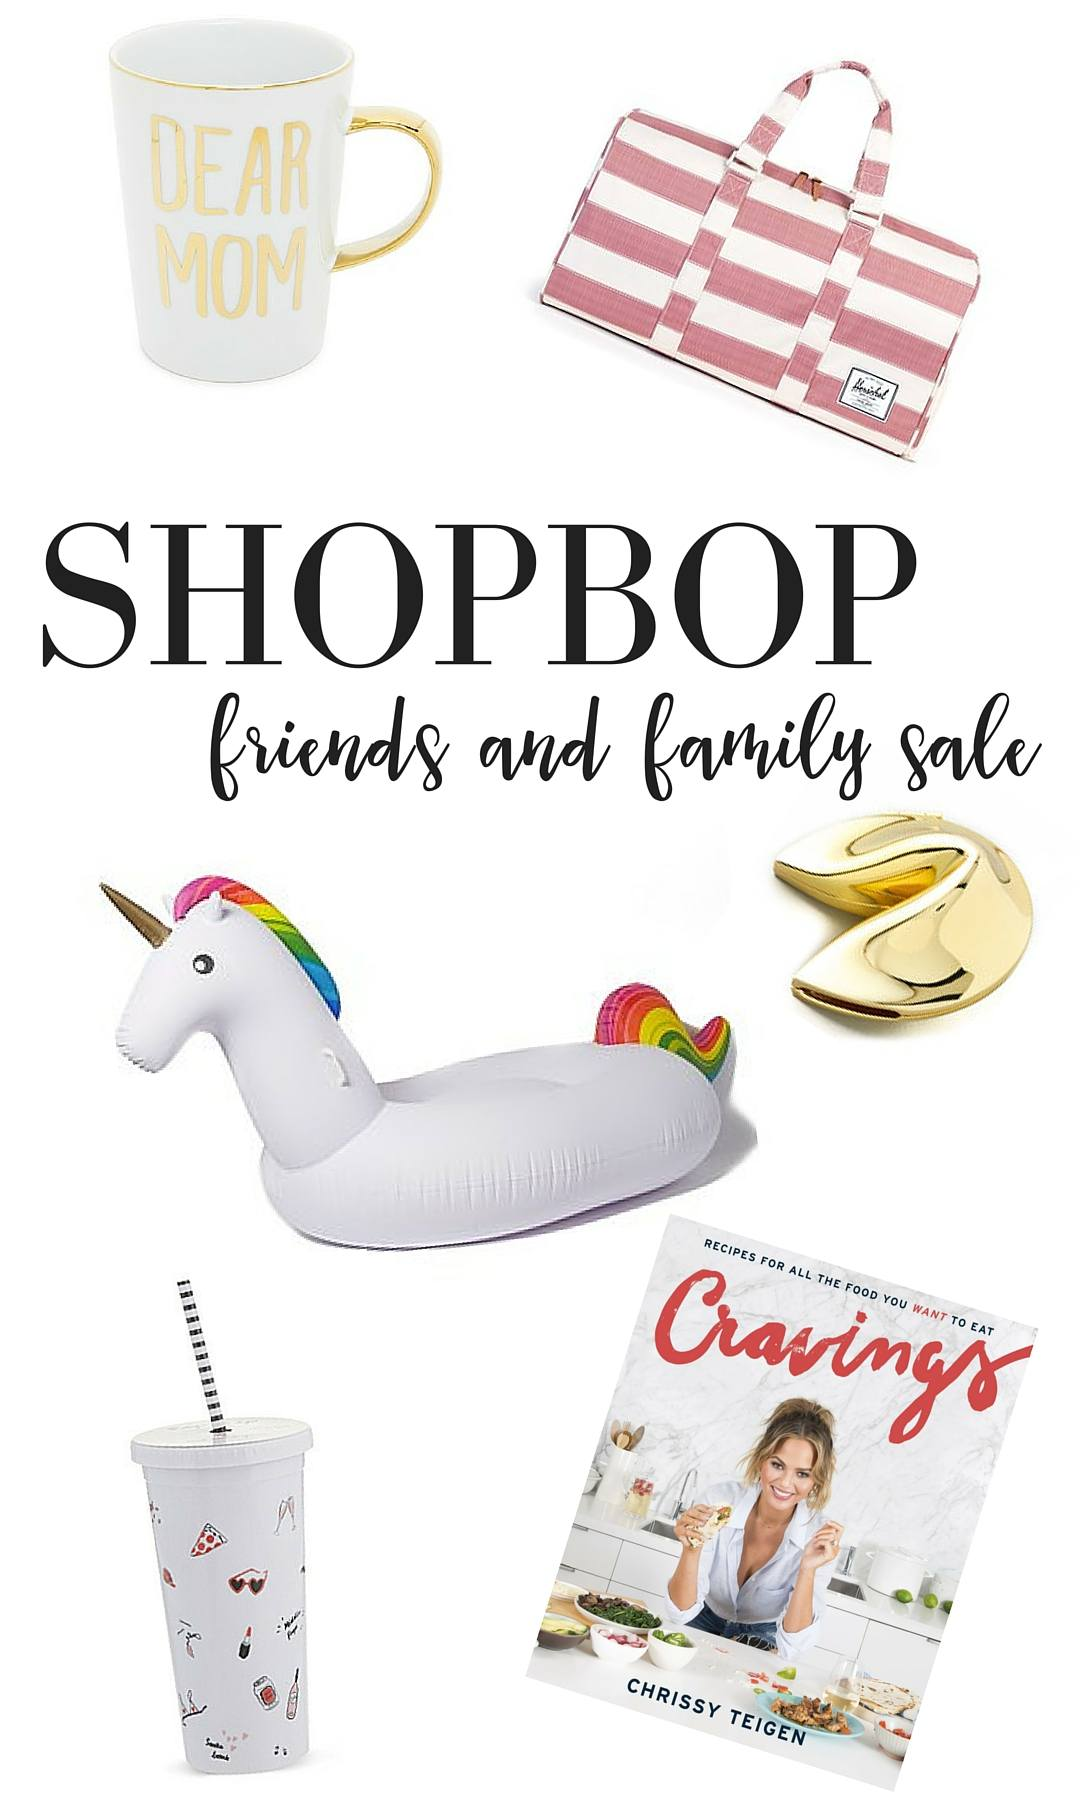 Get your wallets ready because the Shopbop Friends and Family sale is starting now. Save 25% off both SALE and FULL price items using code: INTHEFAM at the checkout. - Shopbop- Makeup Life and Love